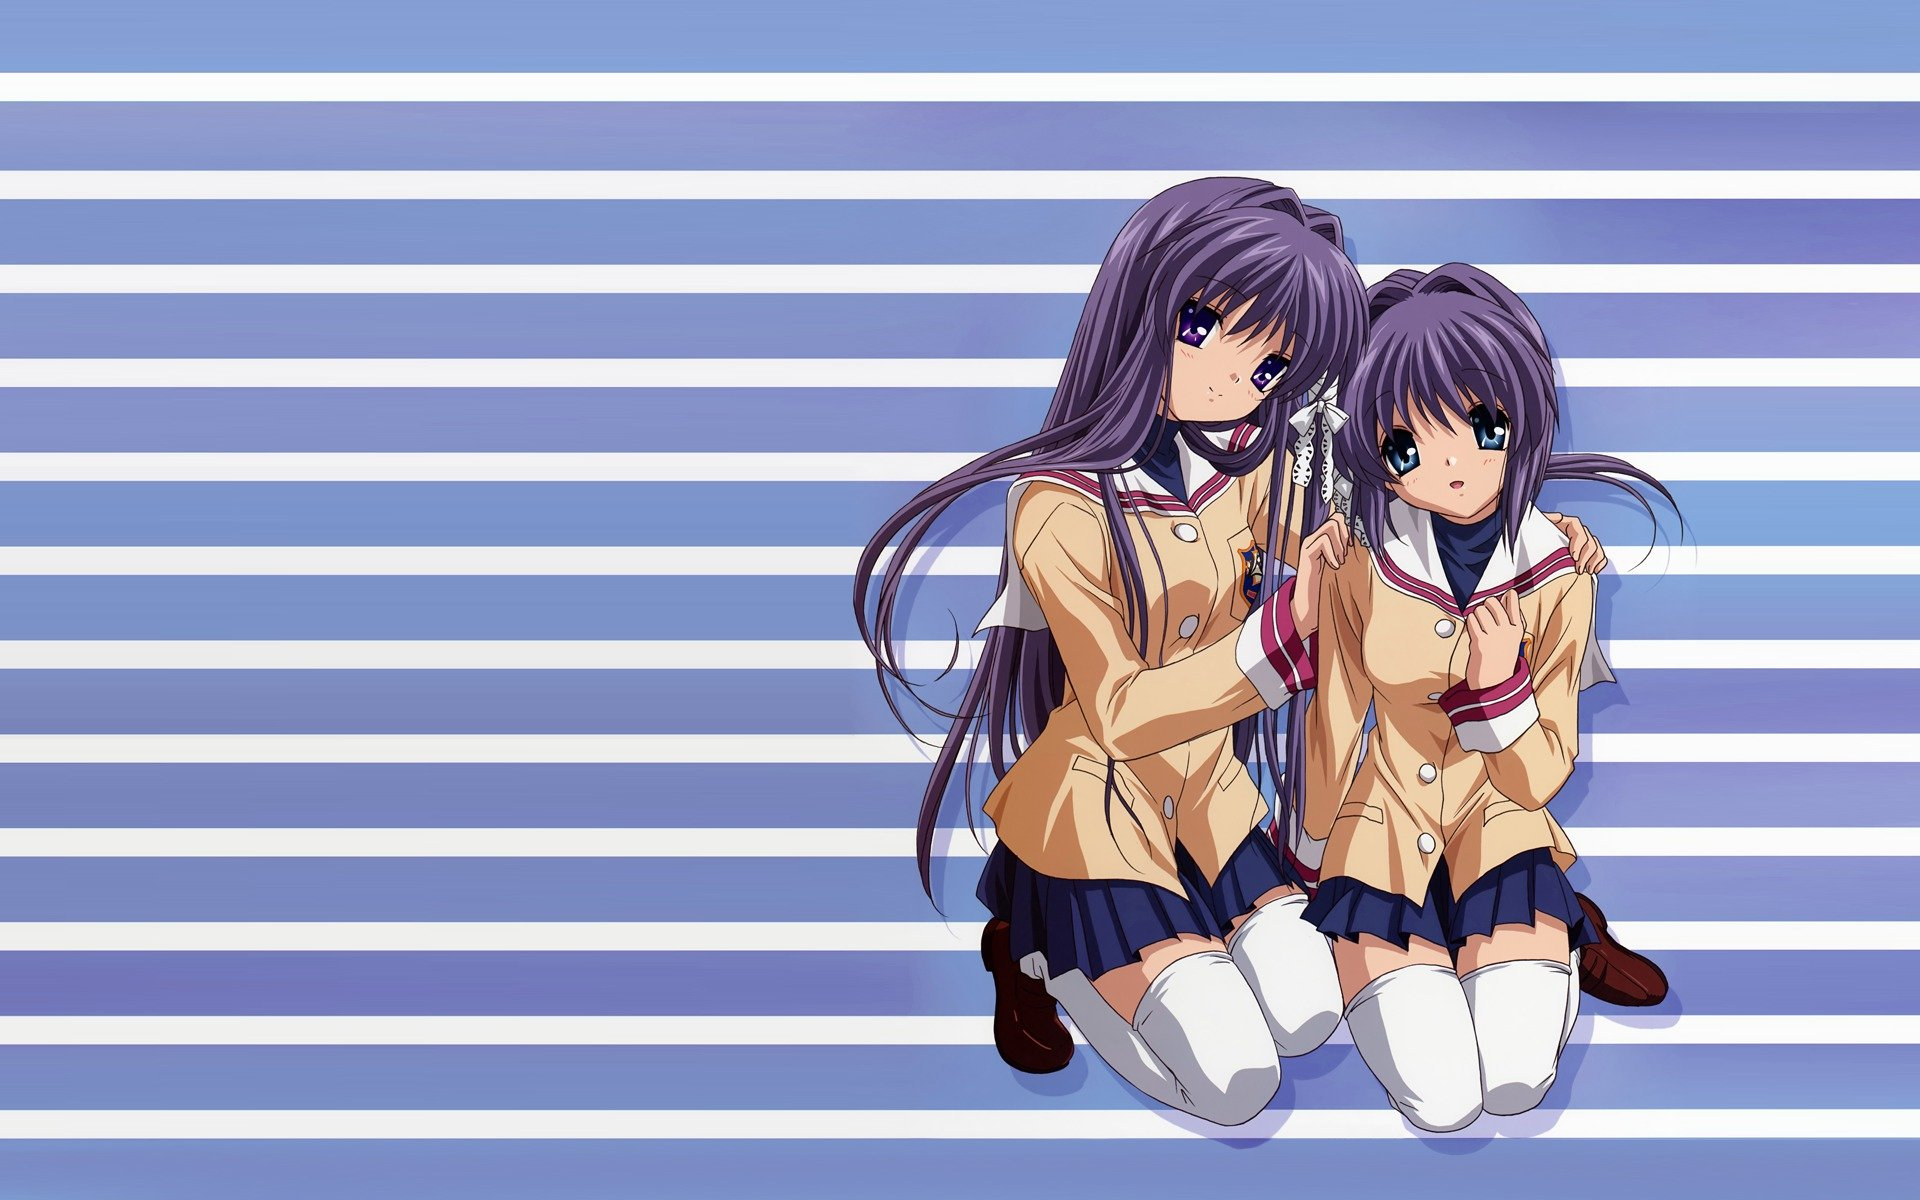 High resolution Kyou Fujibayashi hd 1920x1200 wallpaper ID:318281 for computer